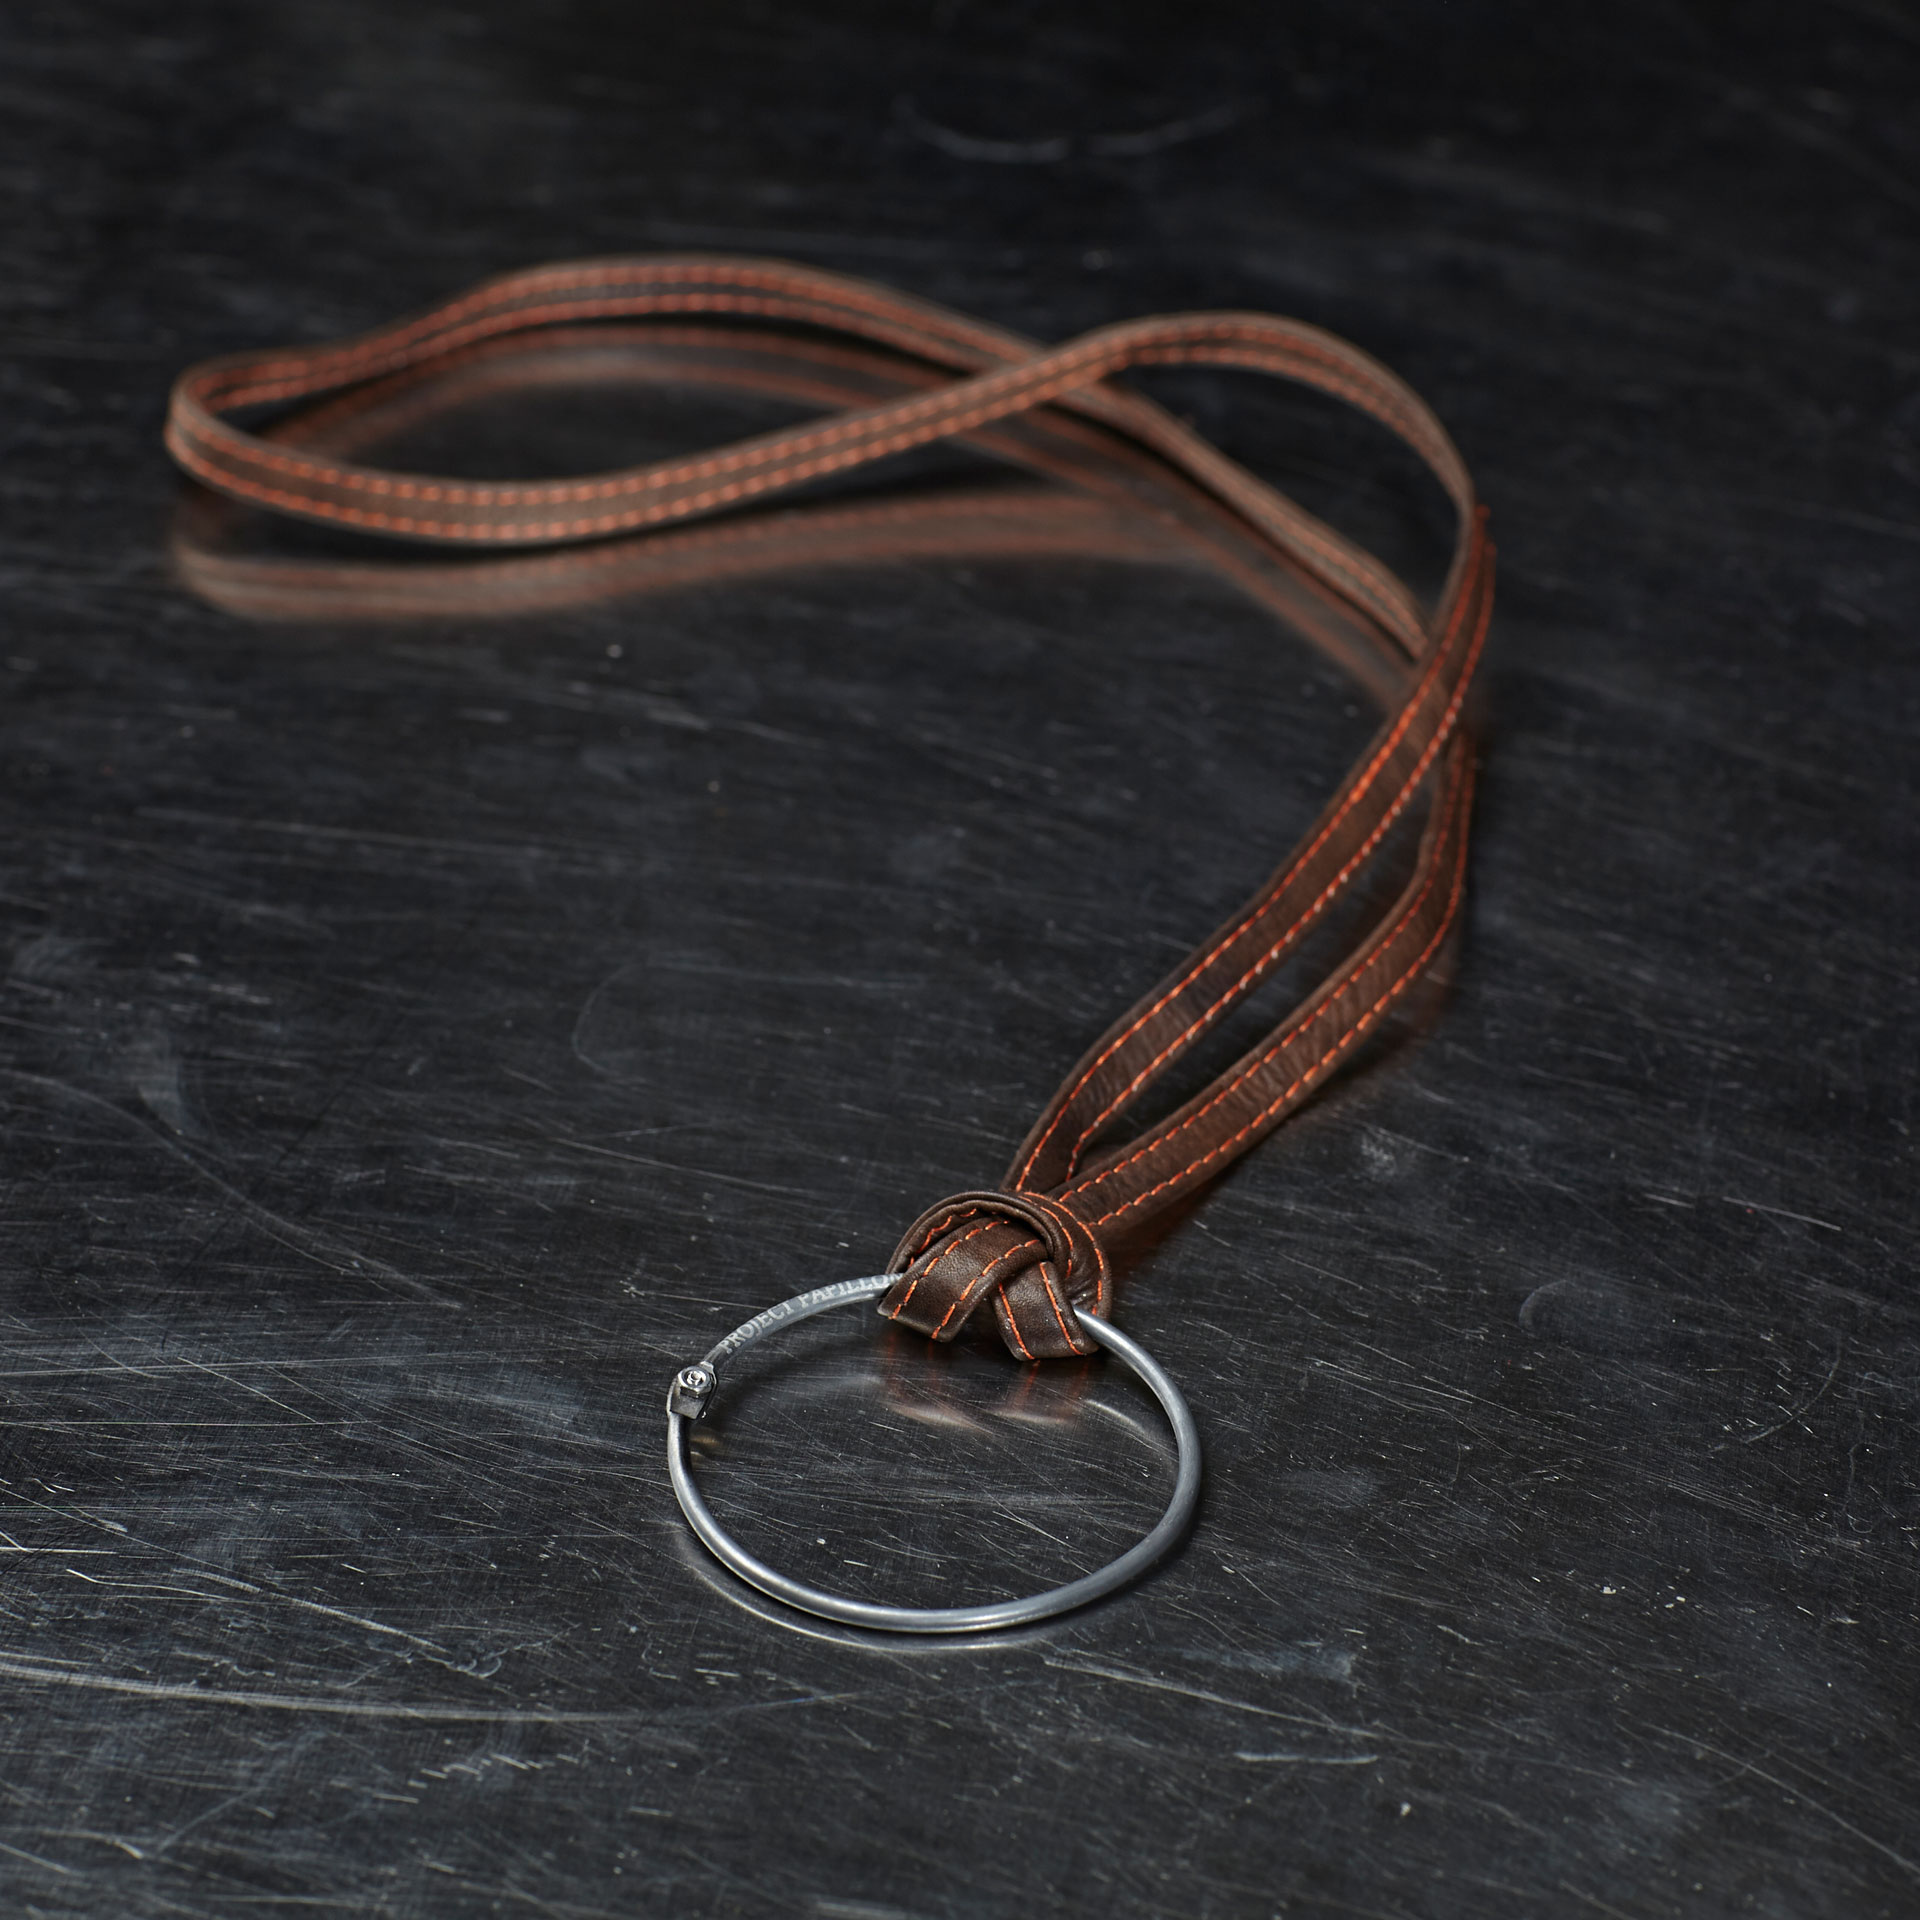 Key-Ring-brown-strap